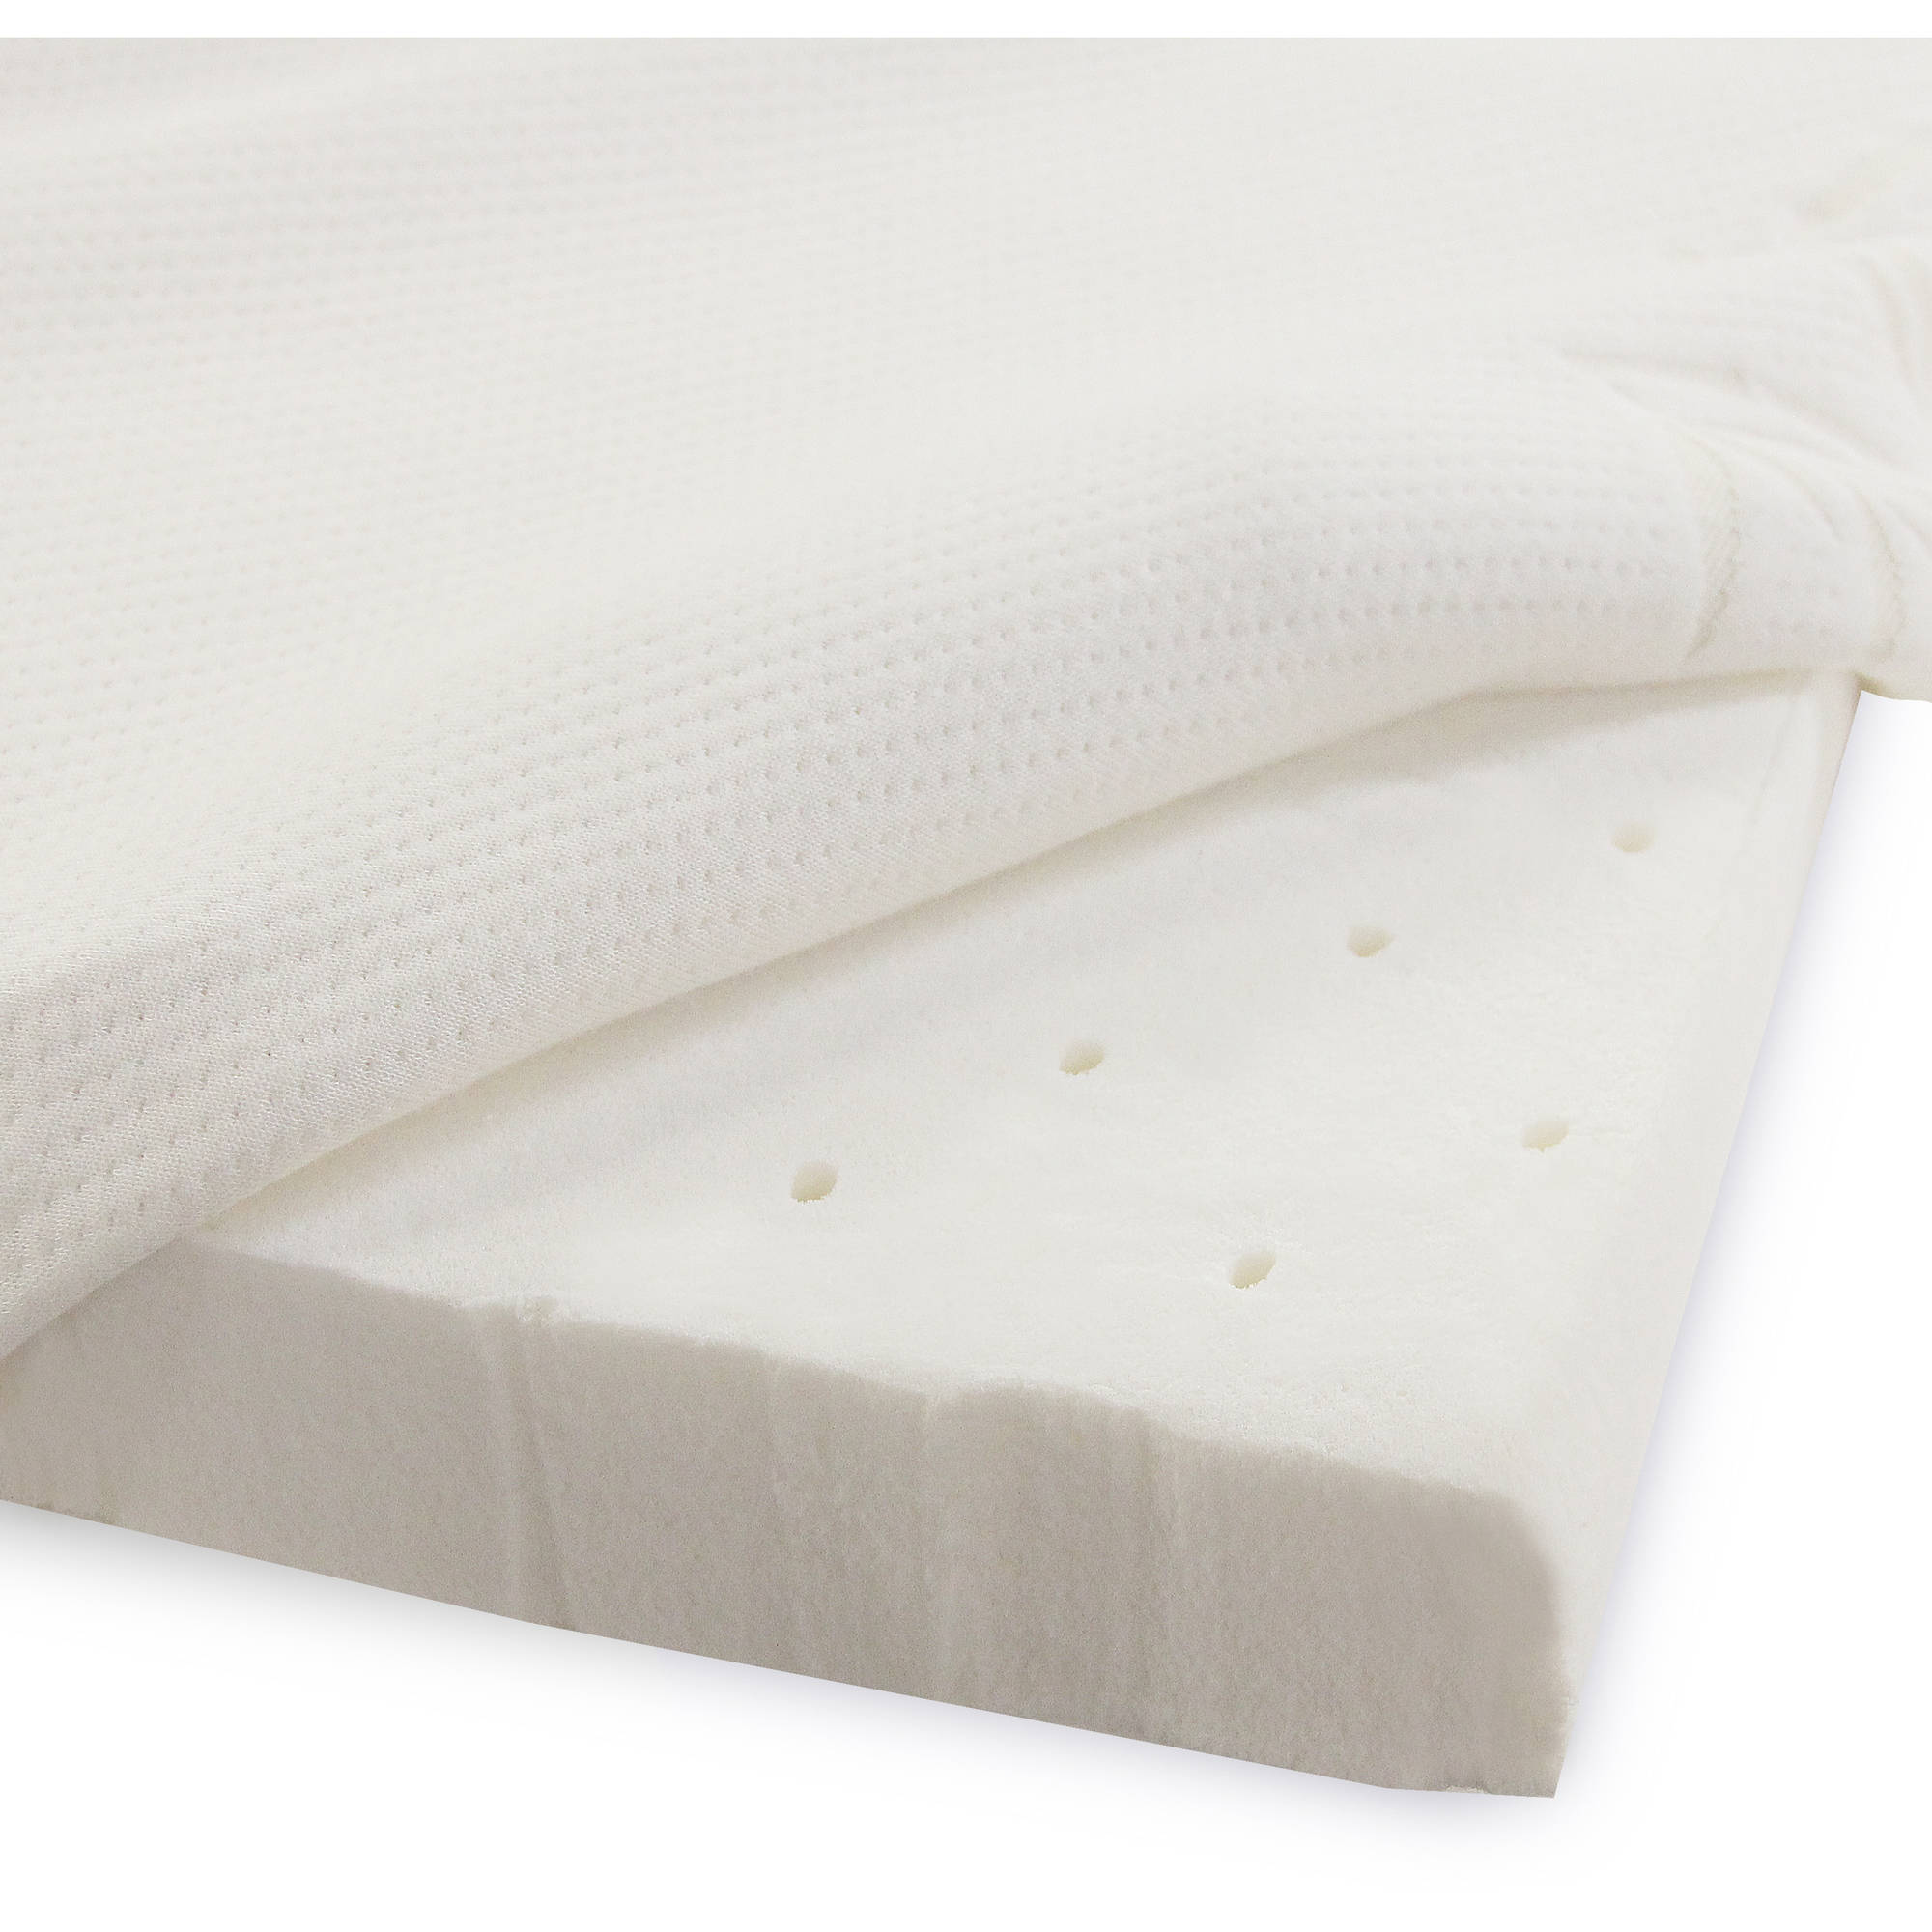 "Modern Sleep 2"" Latex Mattress Topper - Walmart.com"